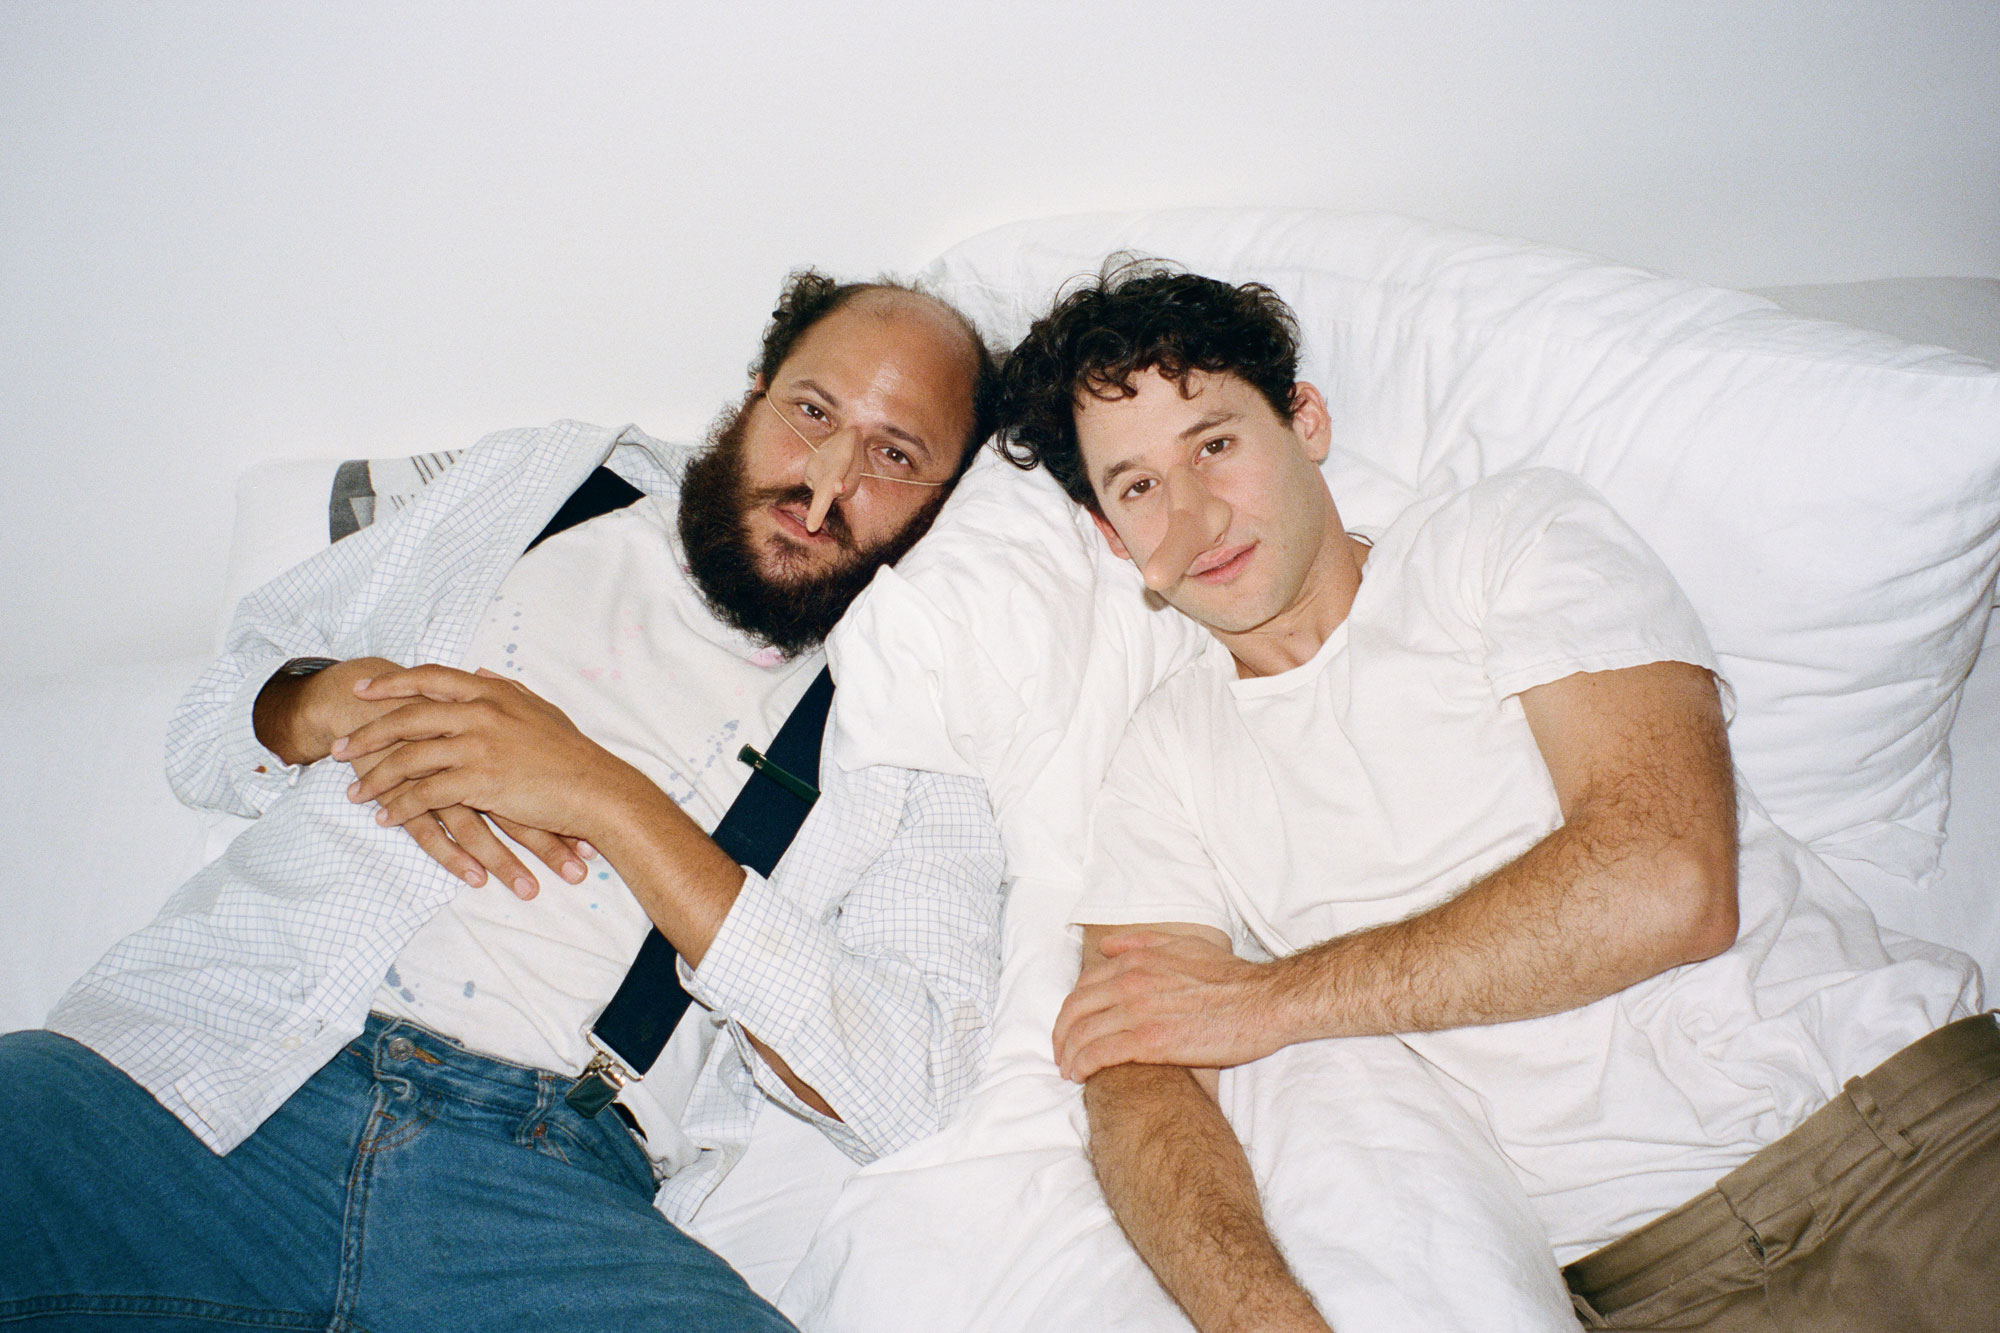 Joey Frank (left) and Jordan Wolfson (right) © PARTNERS